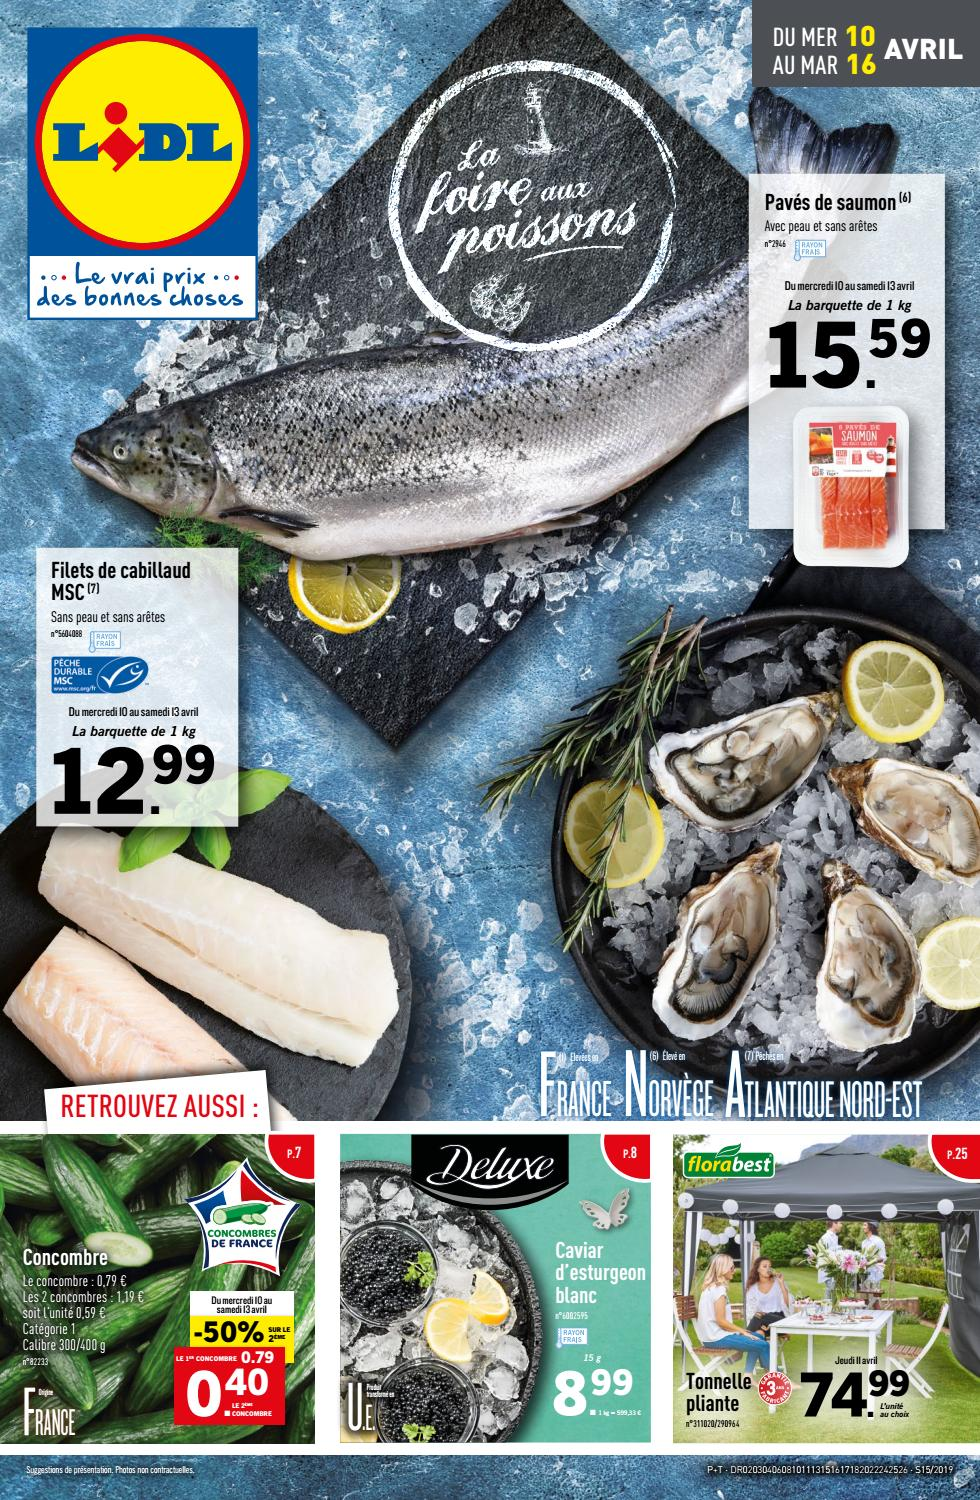 Catalogue Lidl Du 10 Au 16 Avril 2019 By